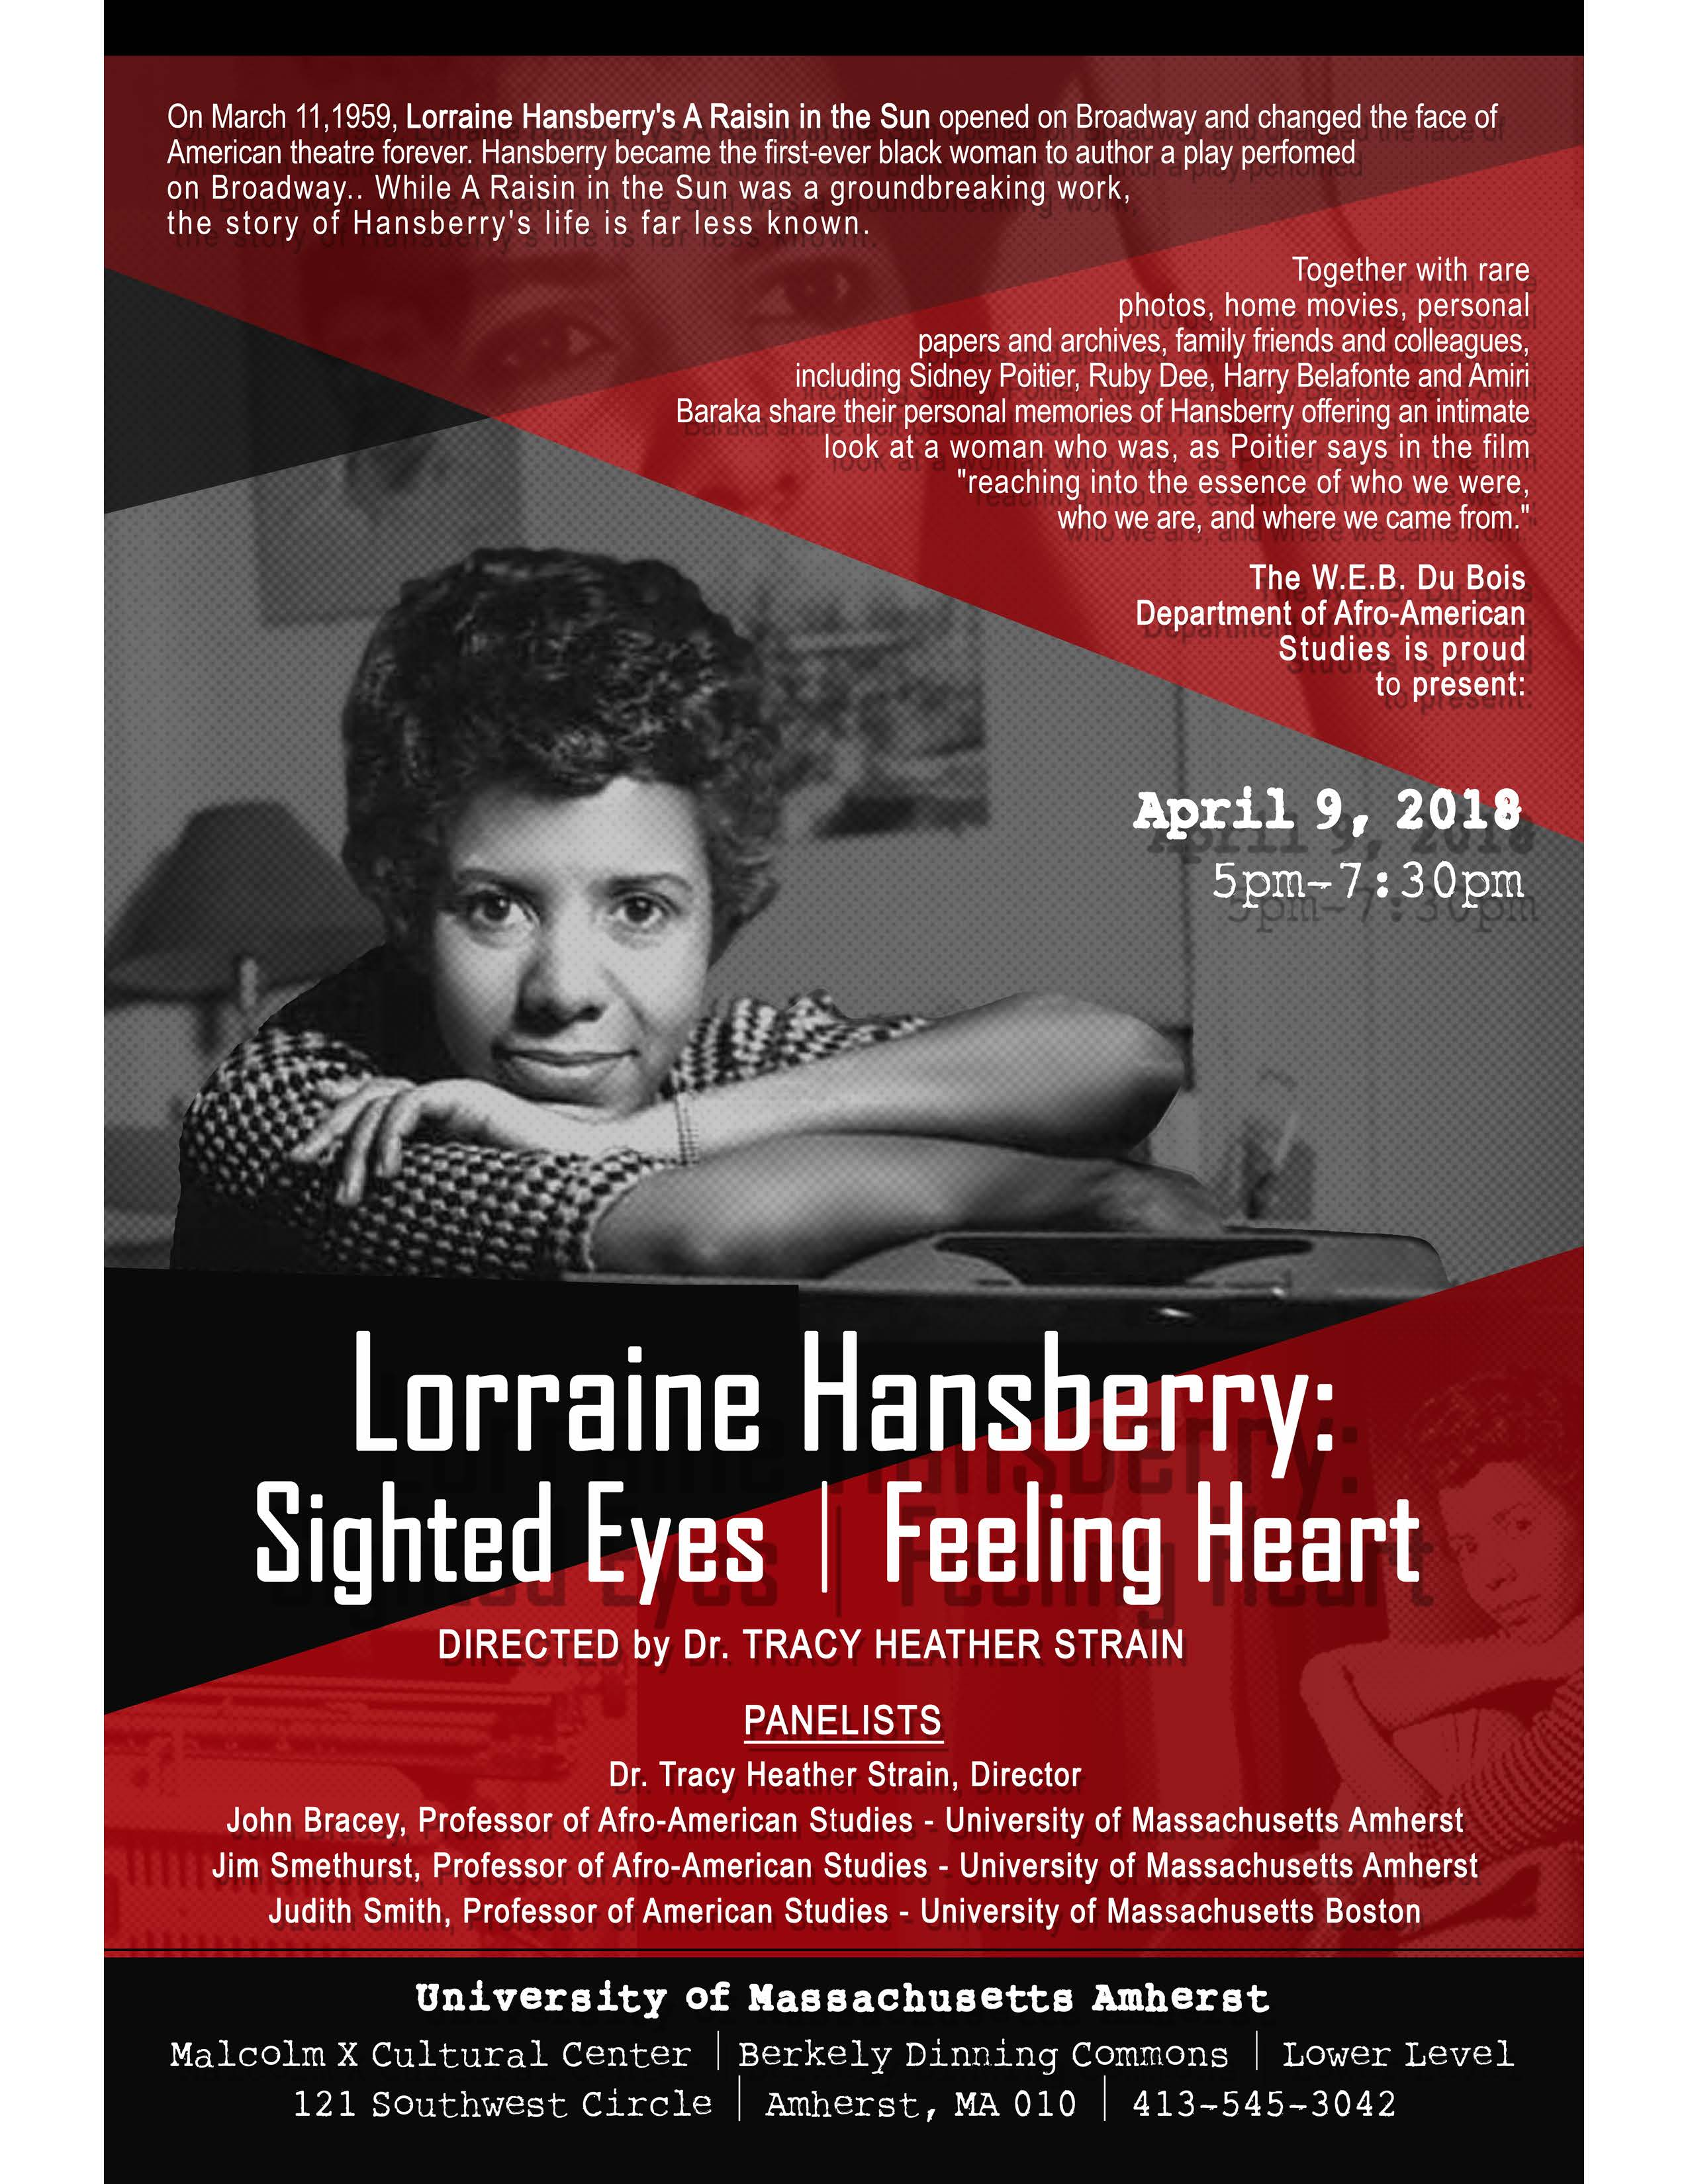 Image of flyer with Lorraine Hansberry's picture